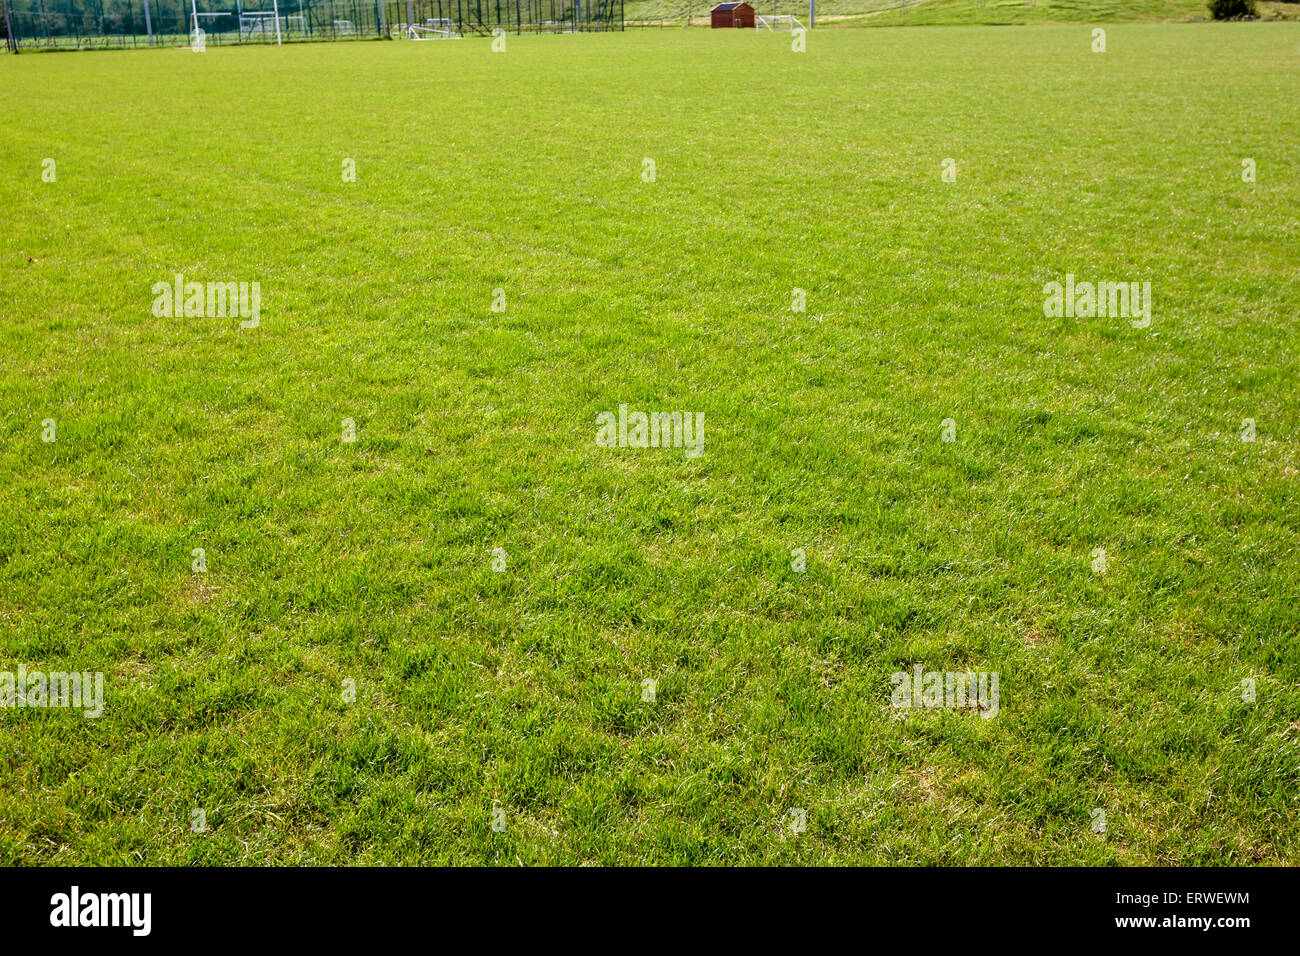 green grass on playing field sports pitch county monaghan republic of ireland Stock Photo